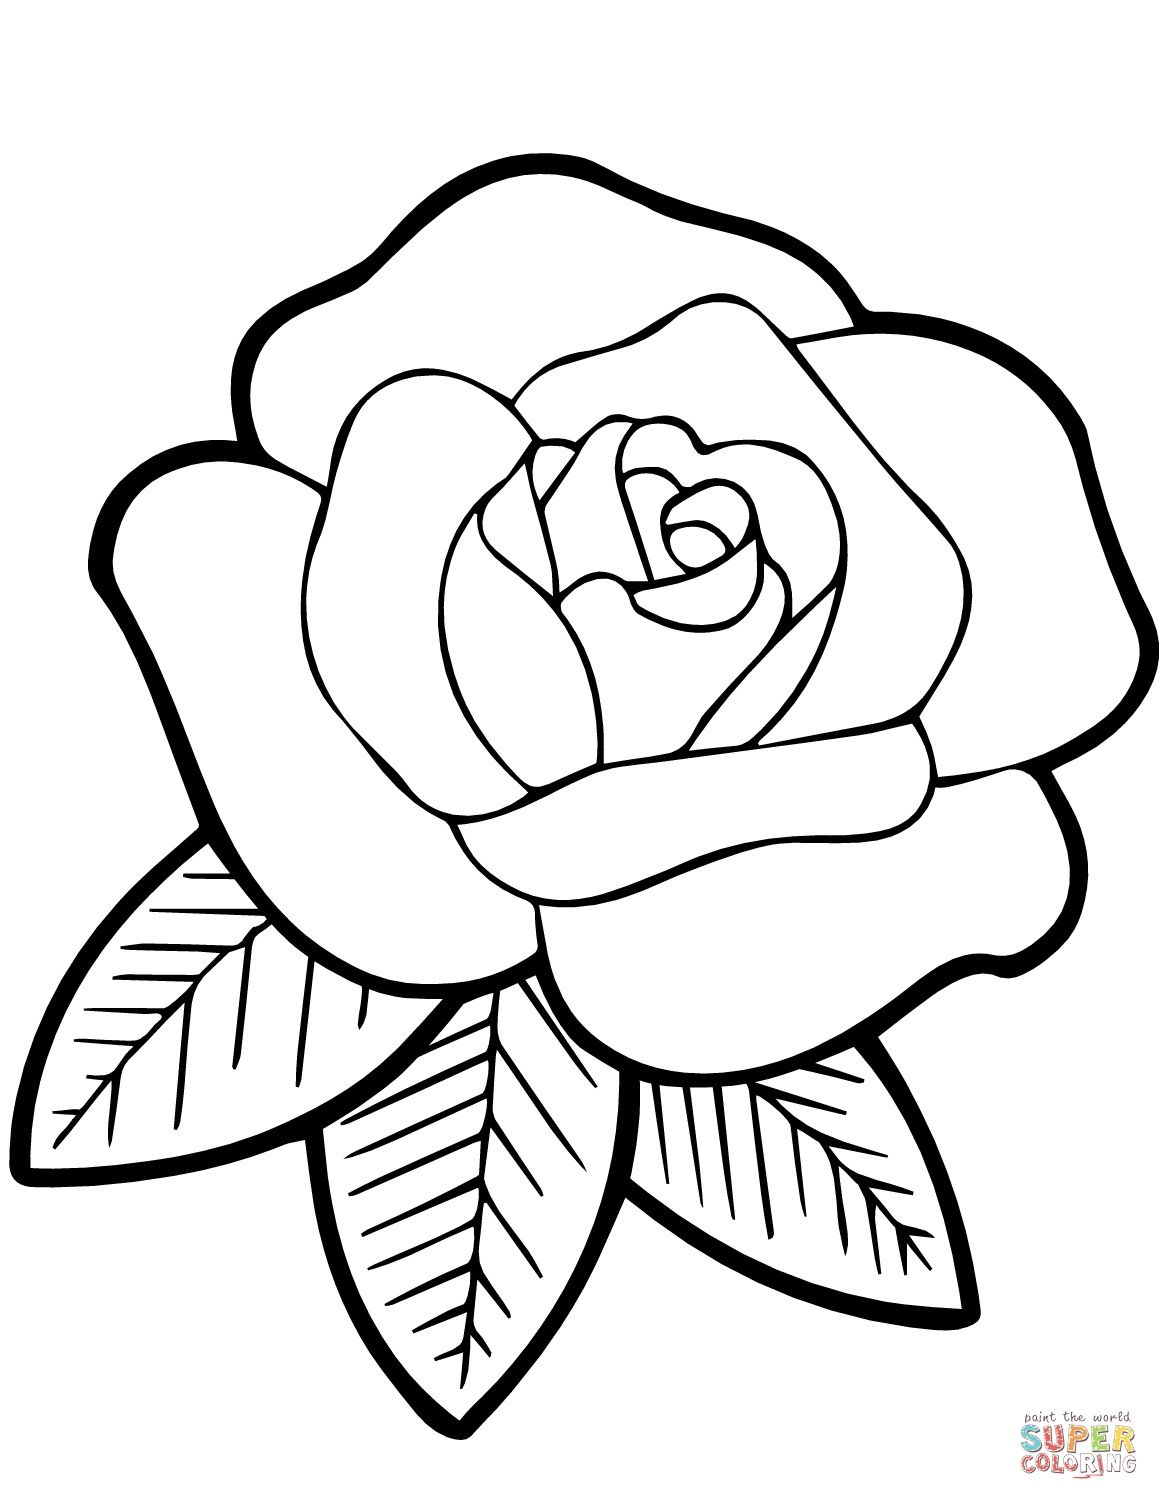 Rose Coloring Pages For Kids Rose Coloring Pages Rose Embroidery Pattern Flower Coloring Pages